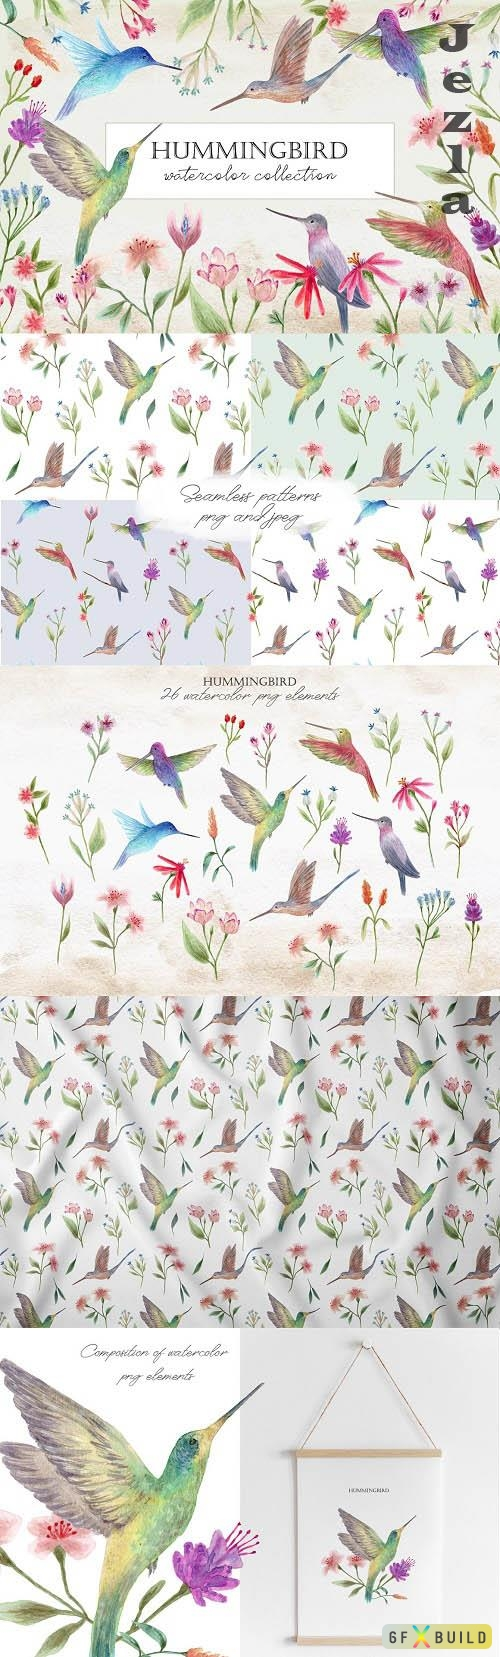 Hummingbirds. Cliparts and Patterns - 6526299